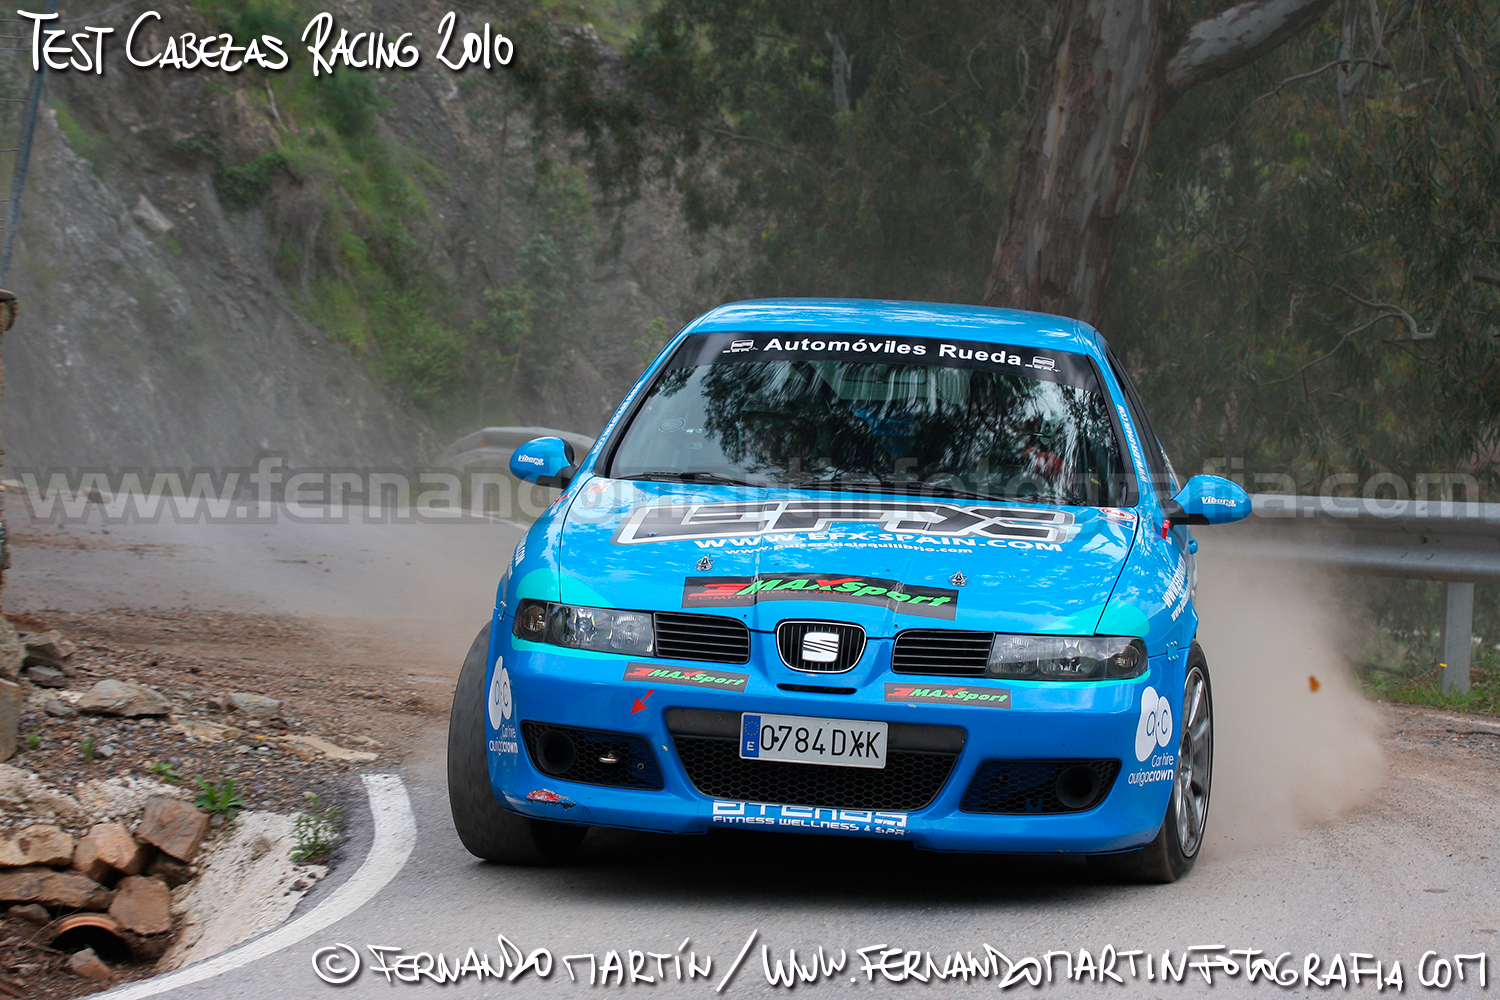 Test Cabezas Racing